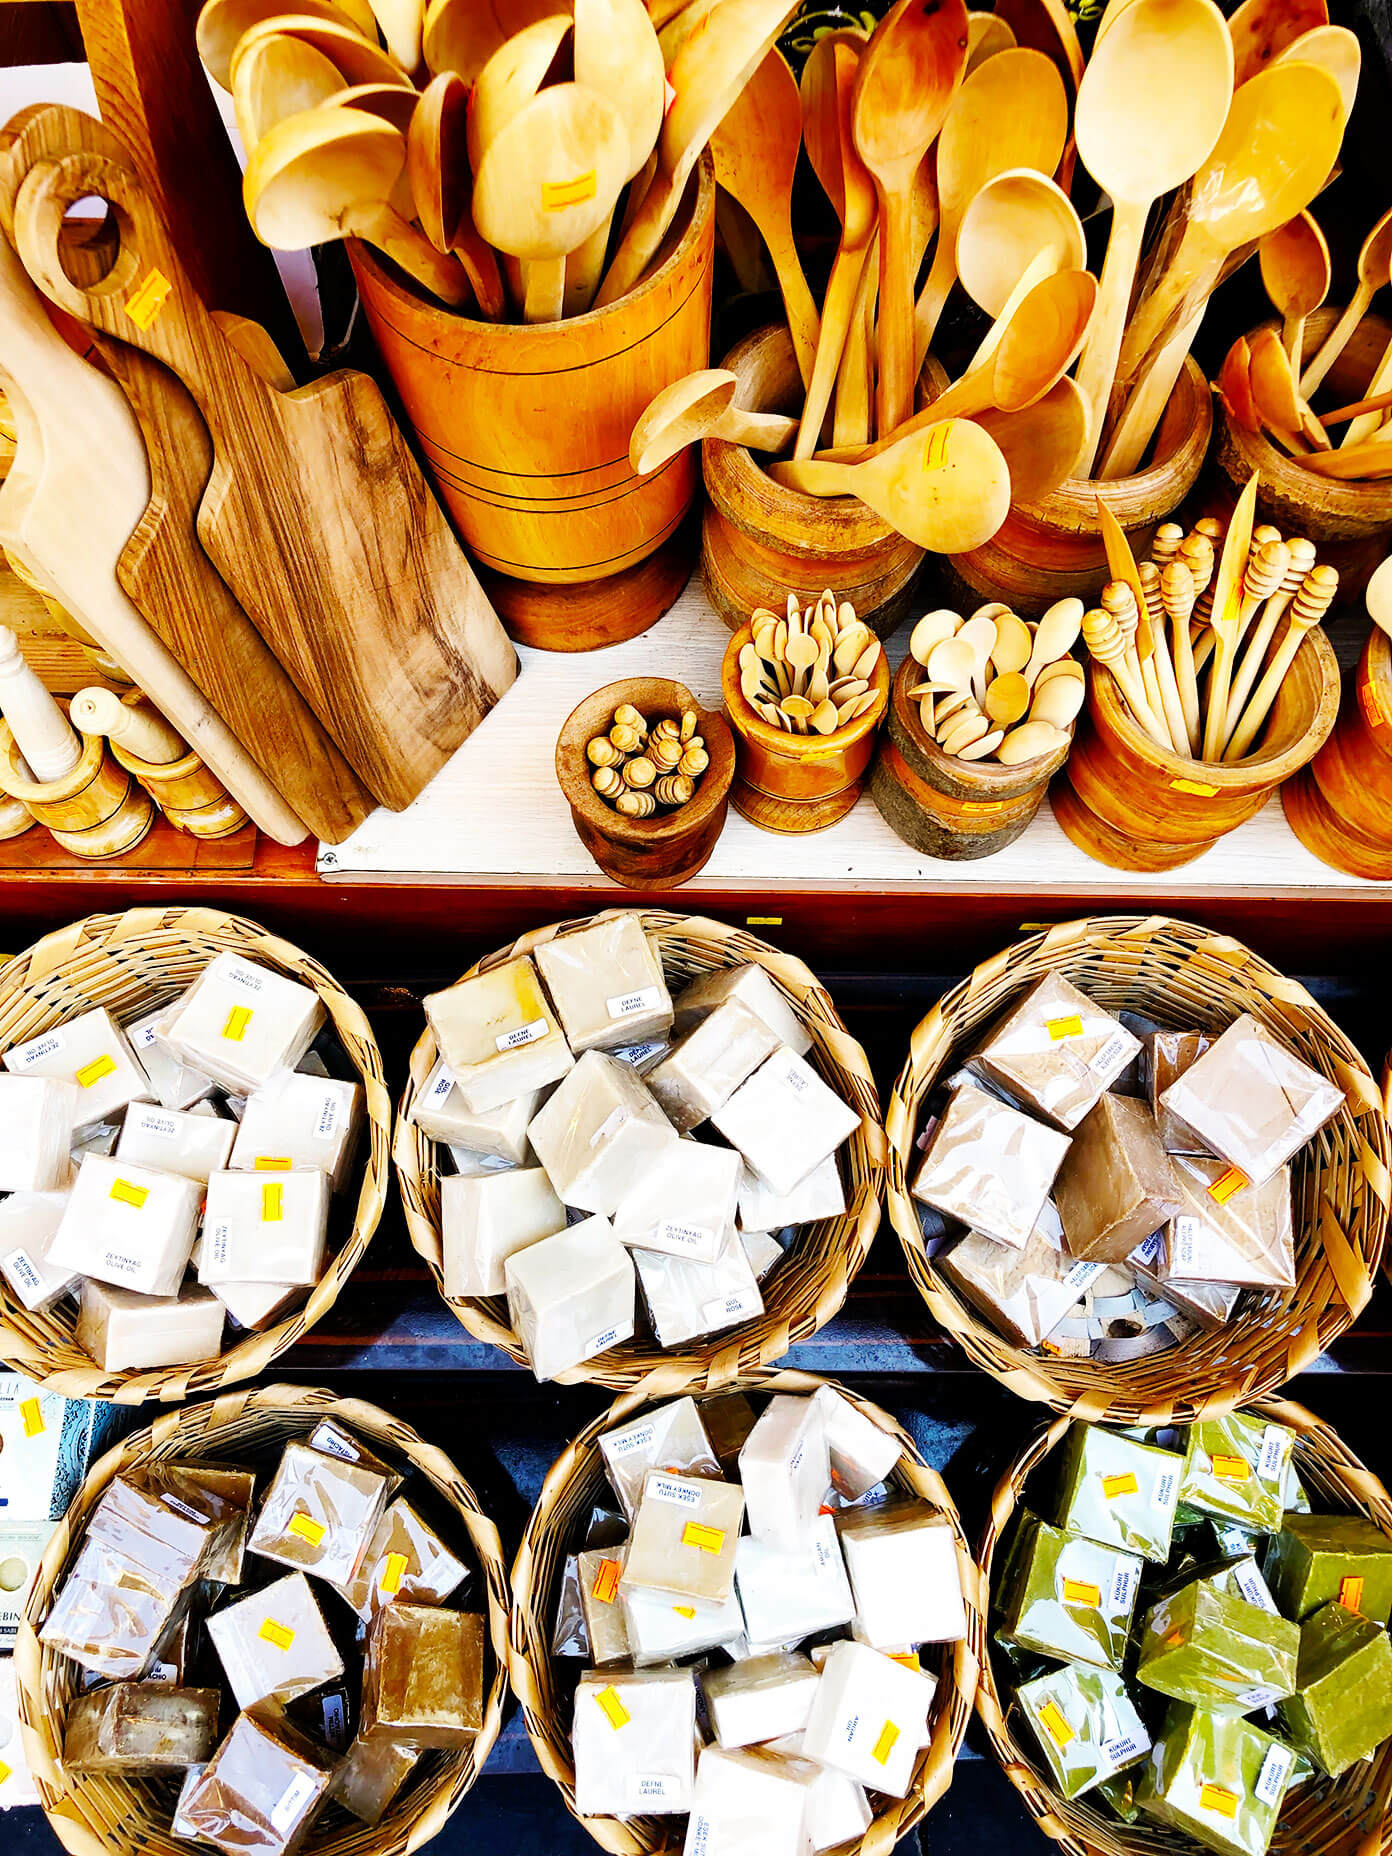 Spice Market Istanbul Soaps and Wooden Spoons